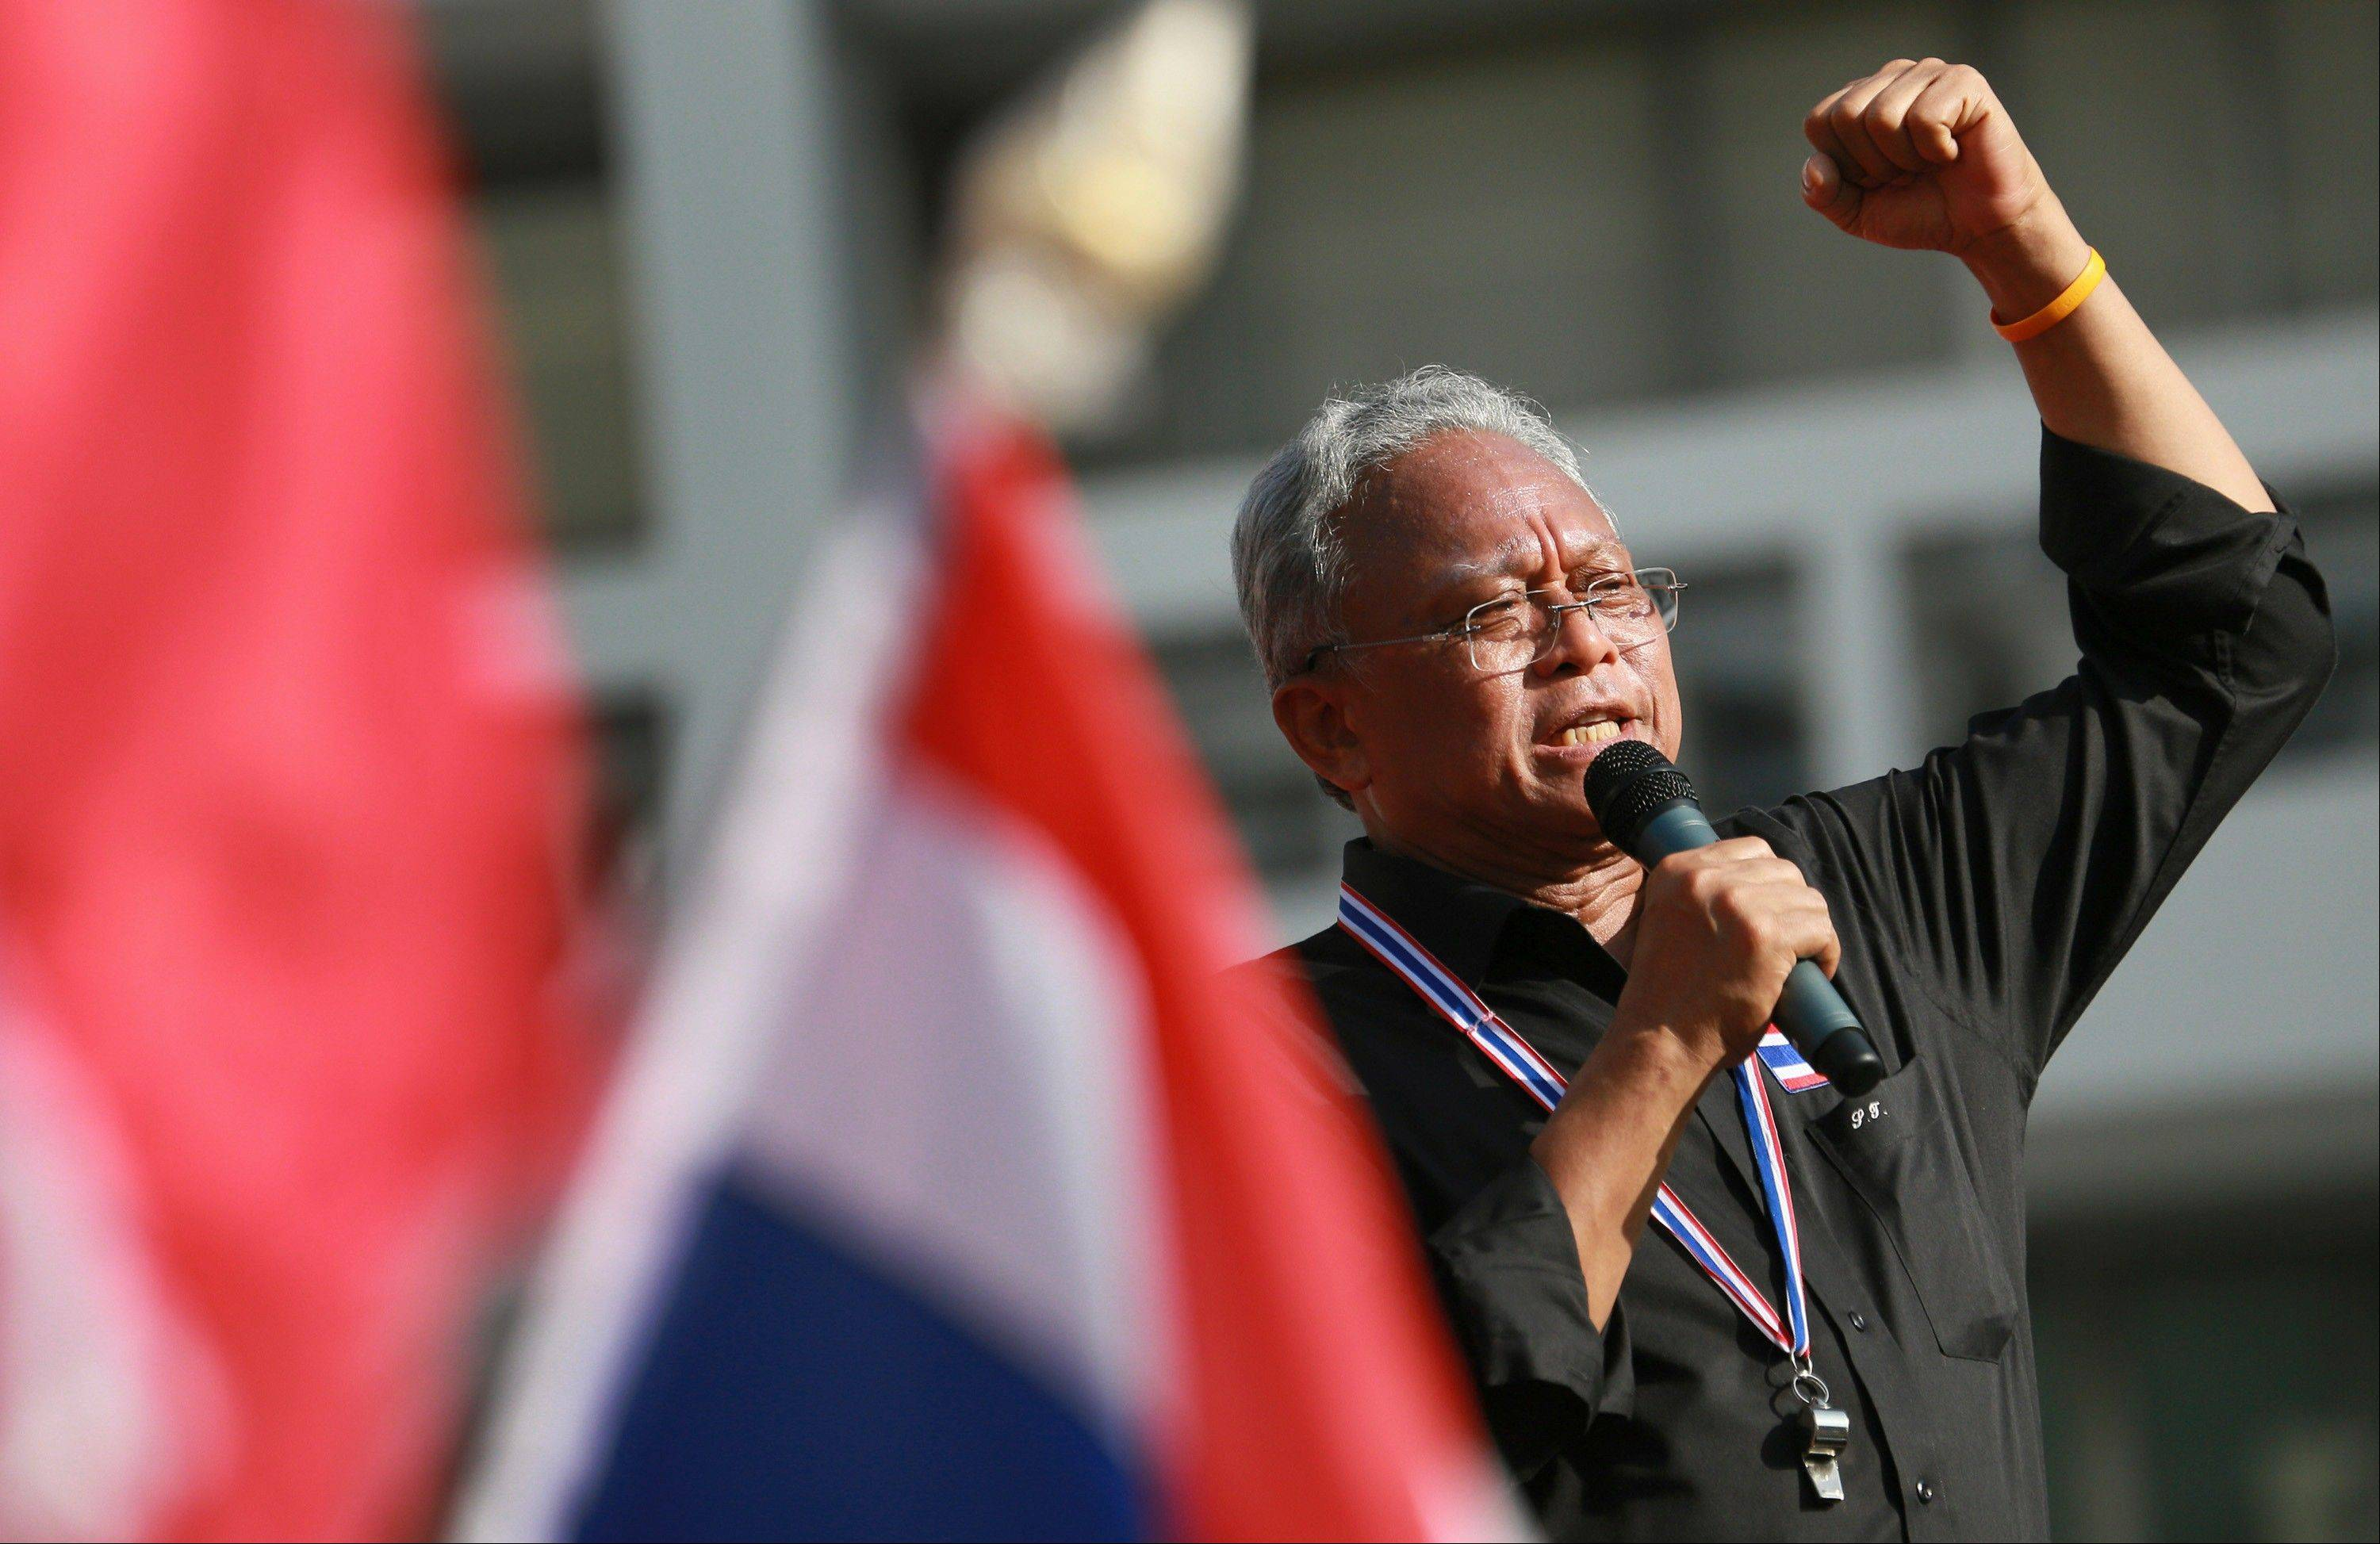 Suthep Thaugsuban, a former deputy premier leading the protest movement, talks to anti-government protesters outside the Government complex in Bangkok, Thailand, Wednesday, Nov. 27, 2013.